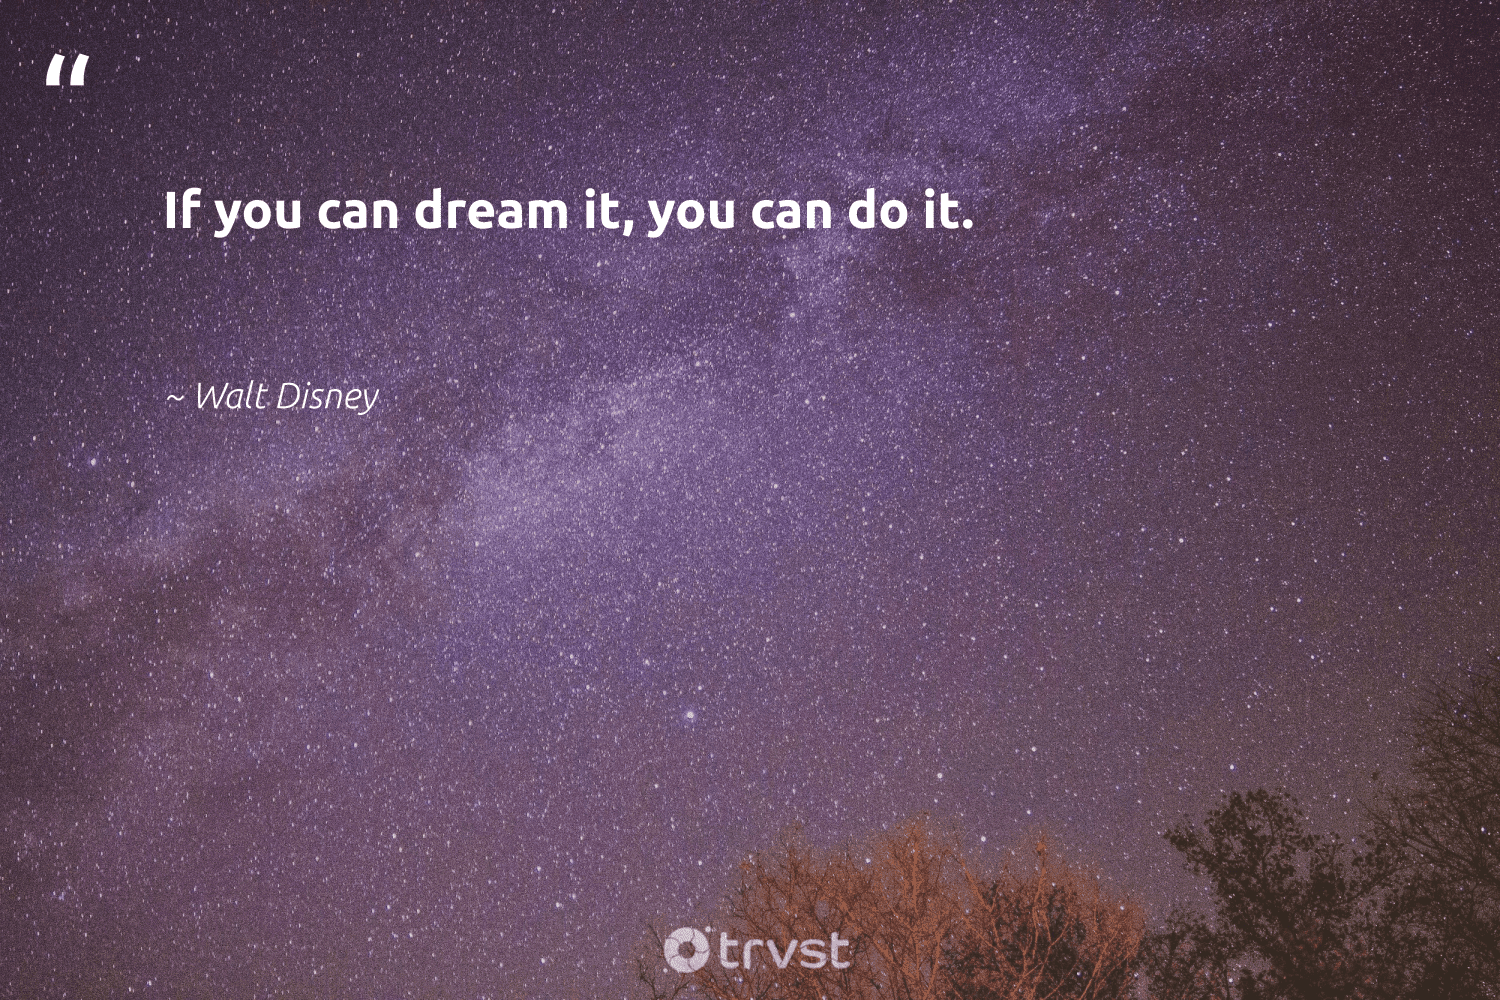 """""""If you can dream it, you can do it.""""  - Walt Disney #trvst #quotes #nevergiveup #impact #softskills #bethechange #begreat #takeaction #futureofwork #beinspired #collectiveaction #thinkgreen"""